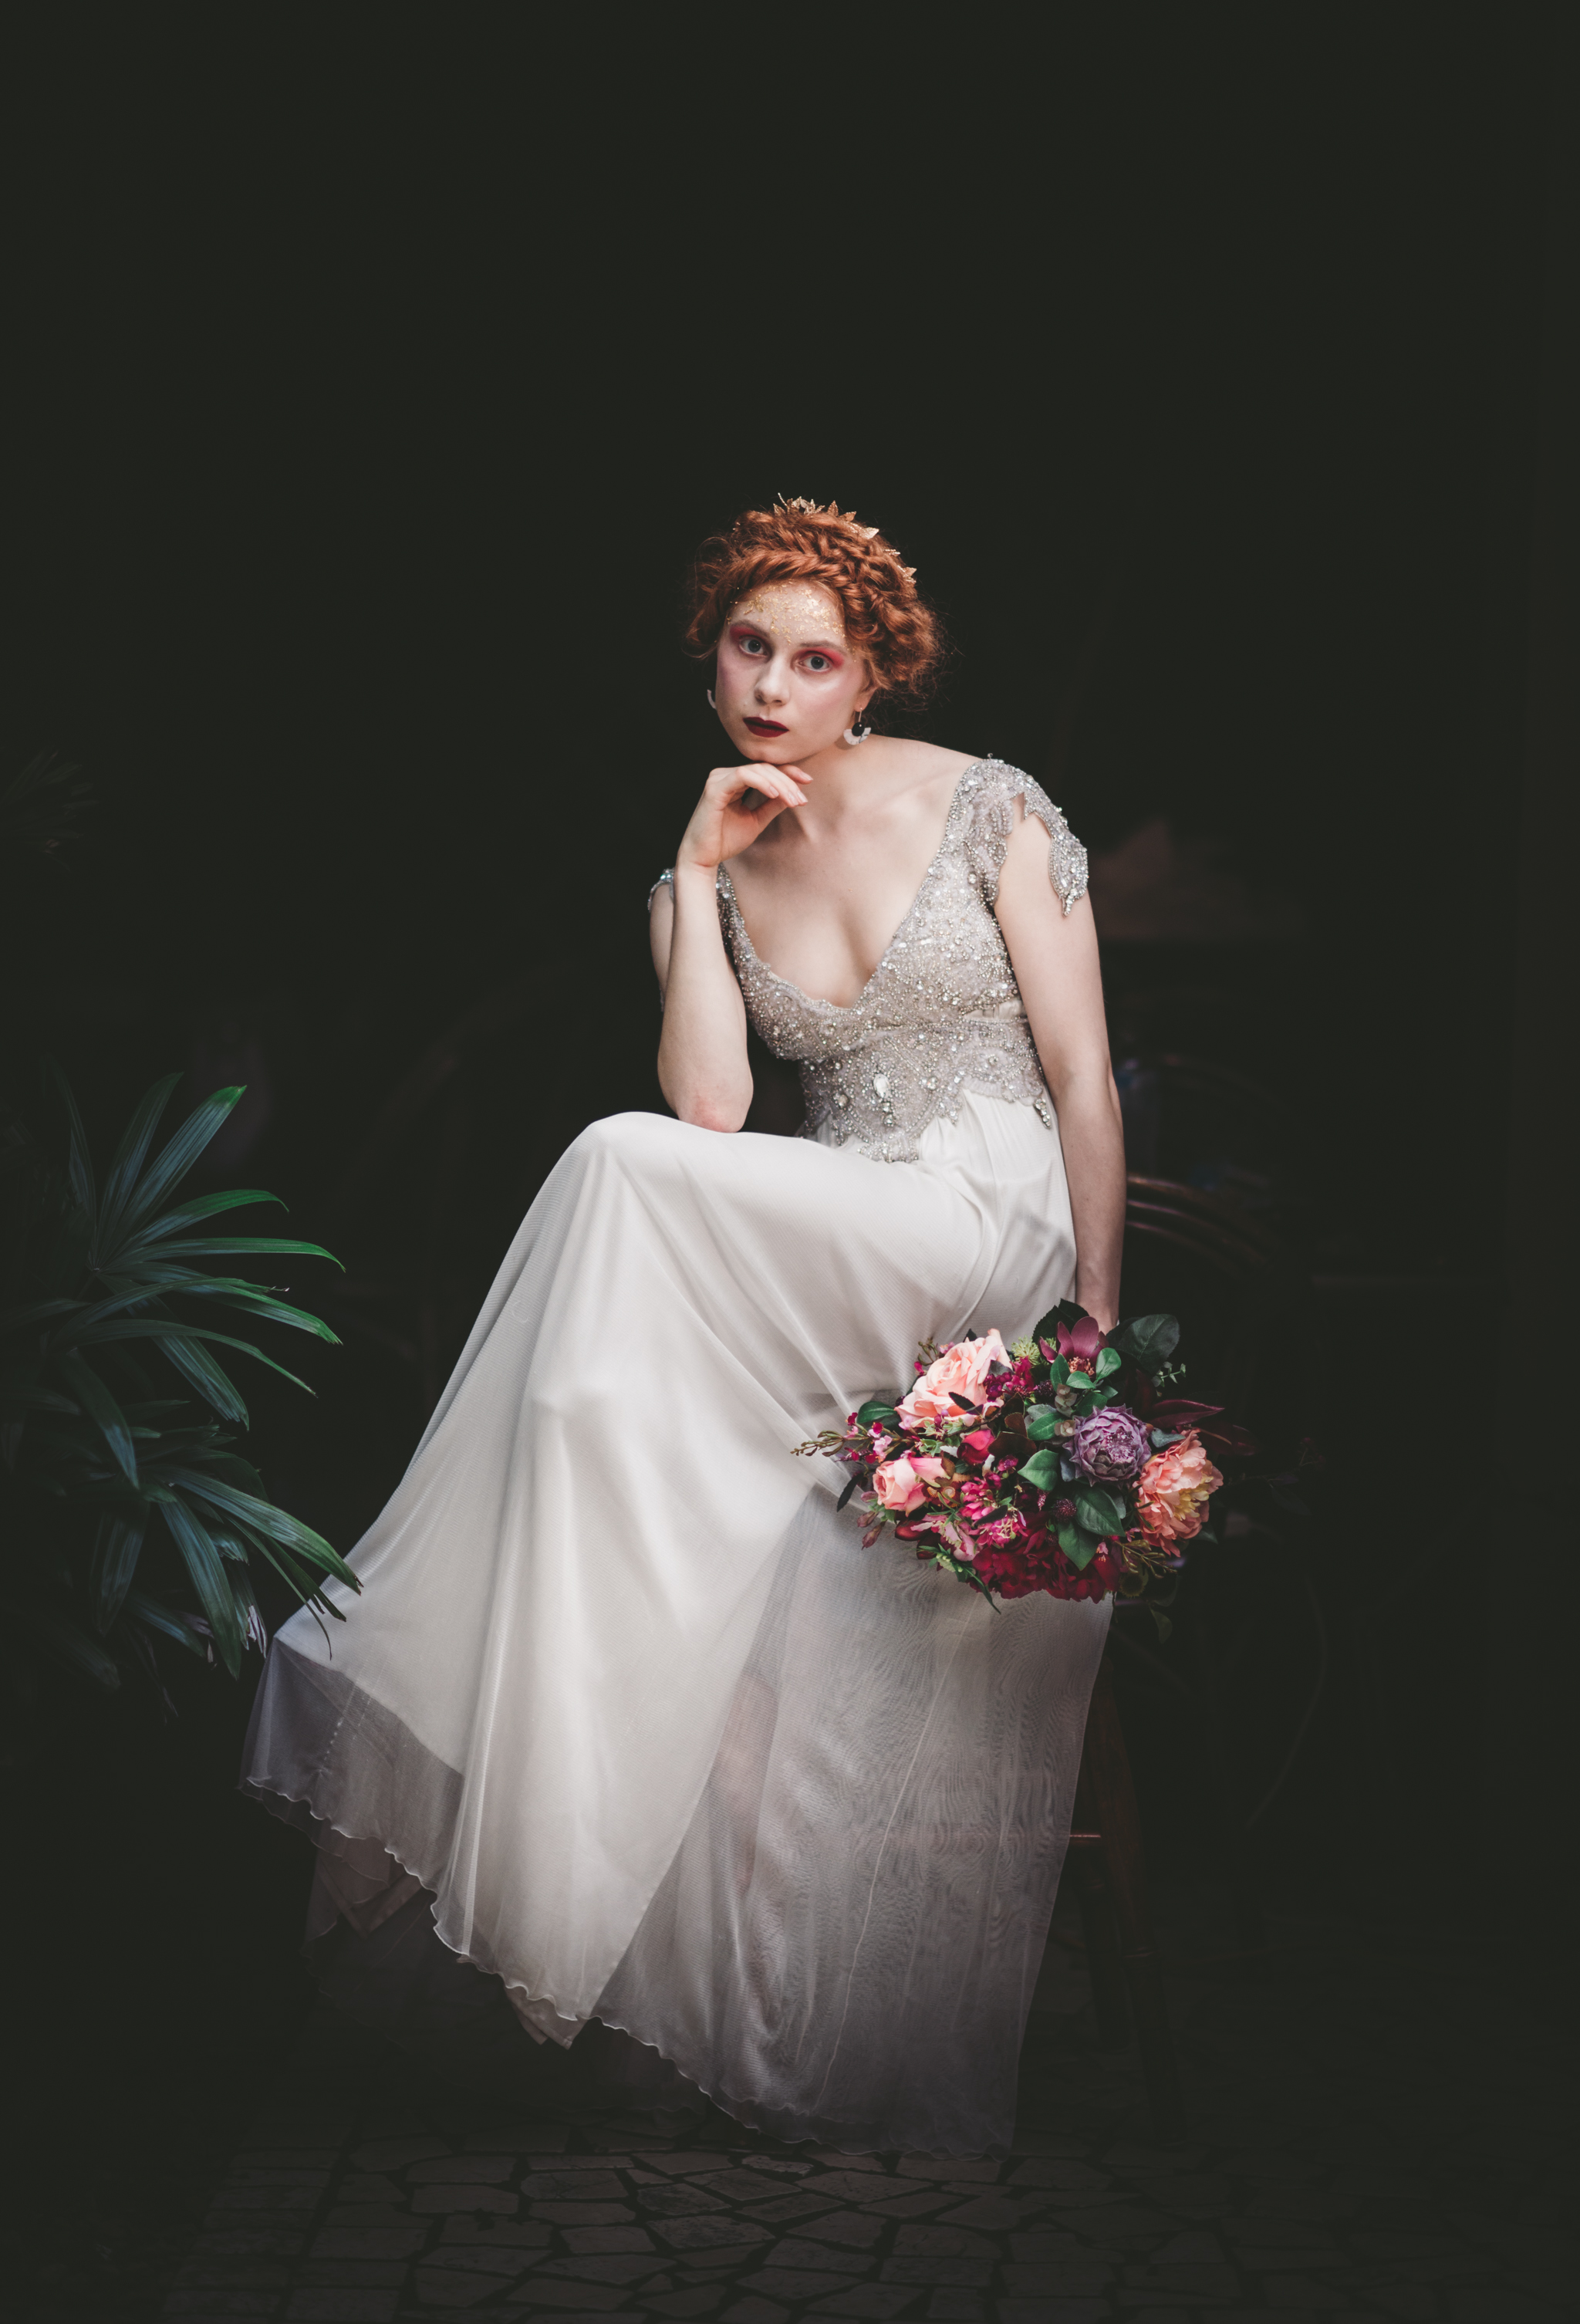 Lovelenscapes Bridal Editorial Photography • Anna Campbell Bridal • Annabella Gown • Alphonse Mucha X Vogue • Ruby